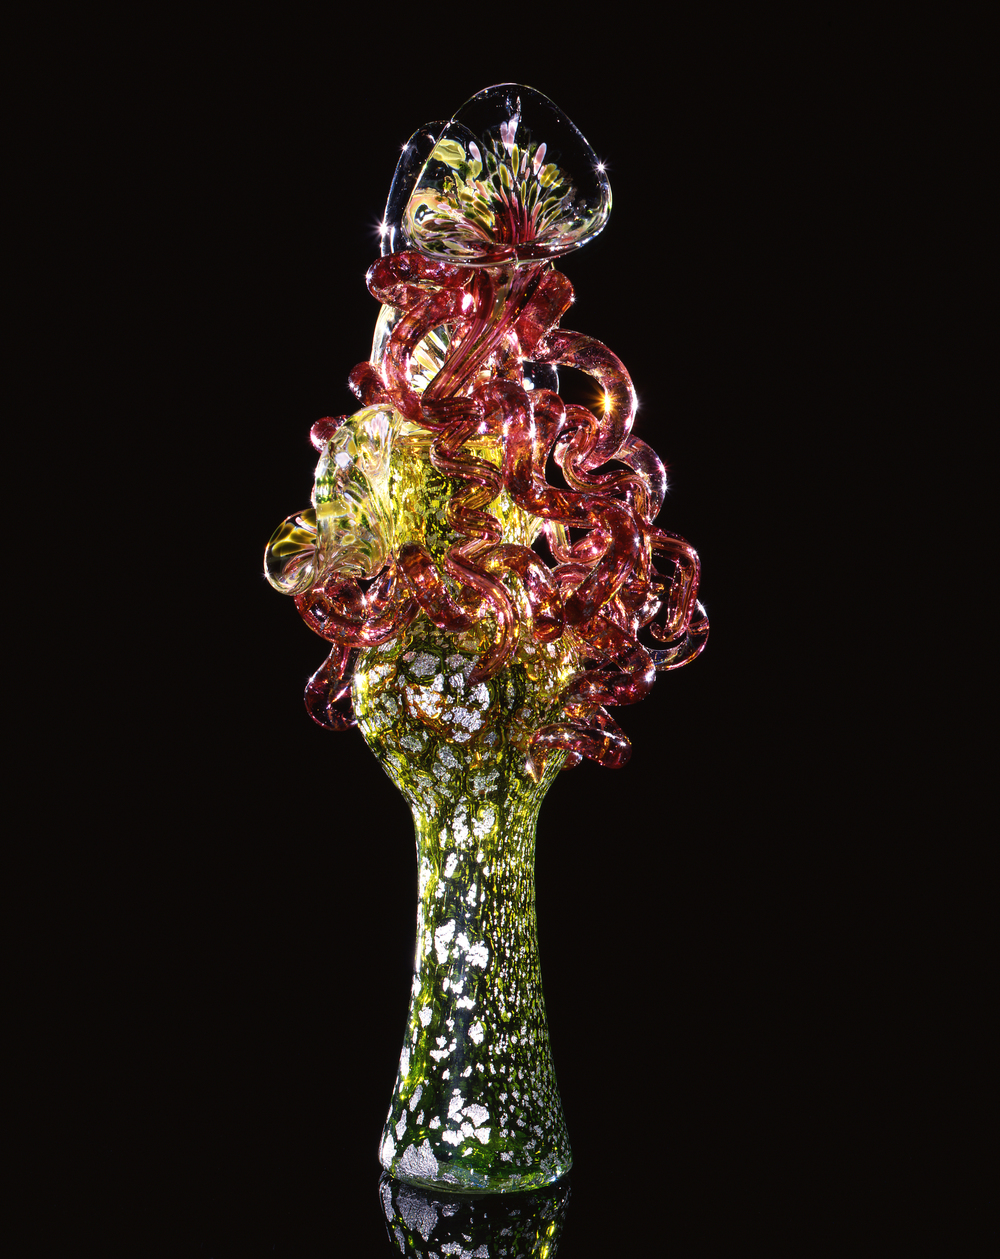 Dale Chihuly,  May Green Piccolo Venetian with Carmine Coils  (1993, glass, 13 x 5 x 5 inches)